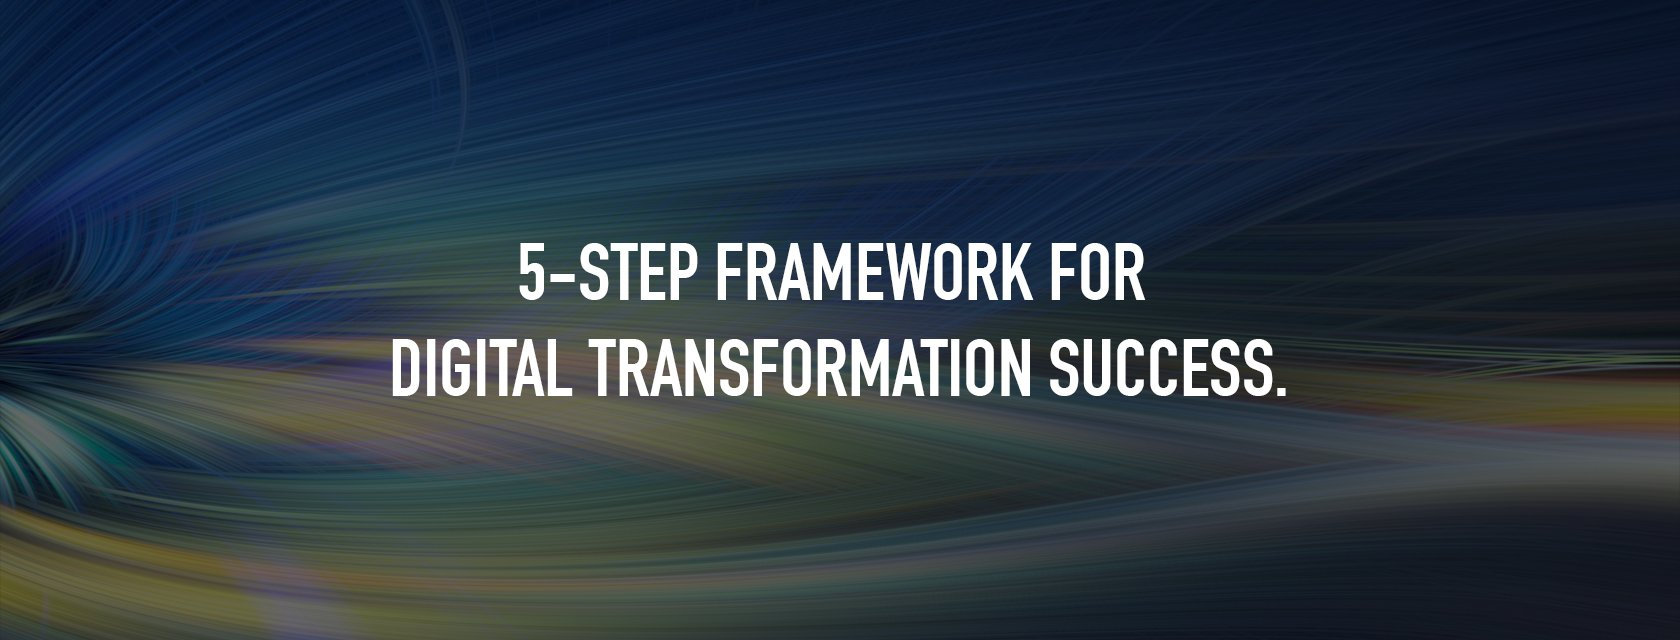 5 key areas to focus for successful digital transformation